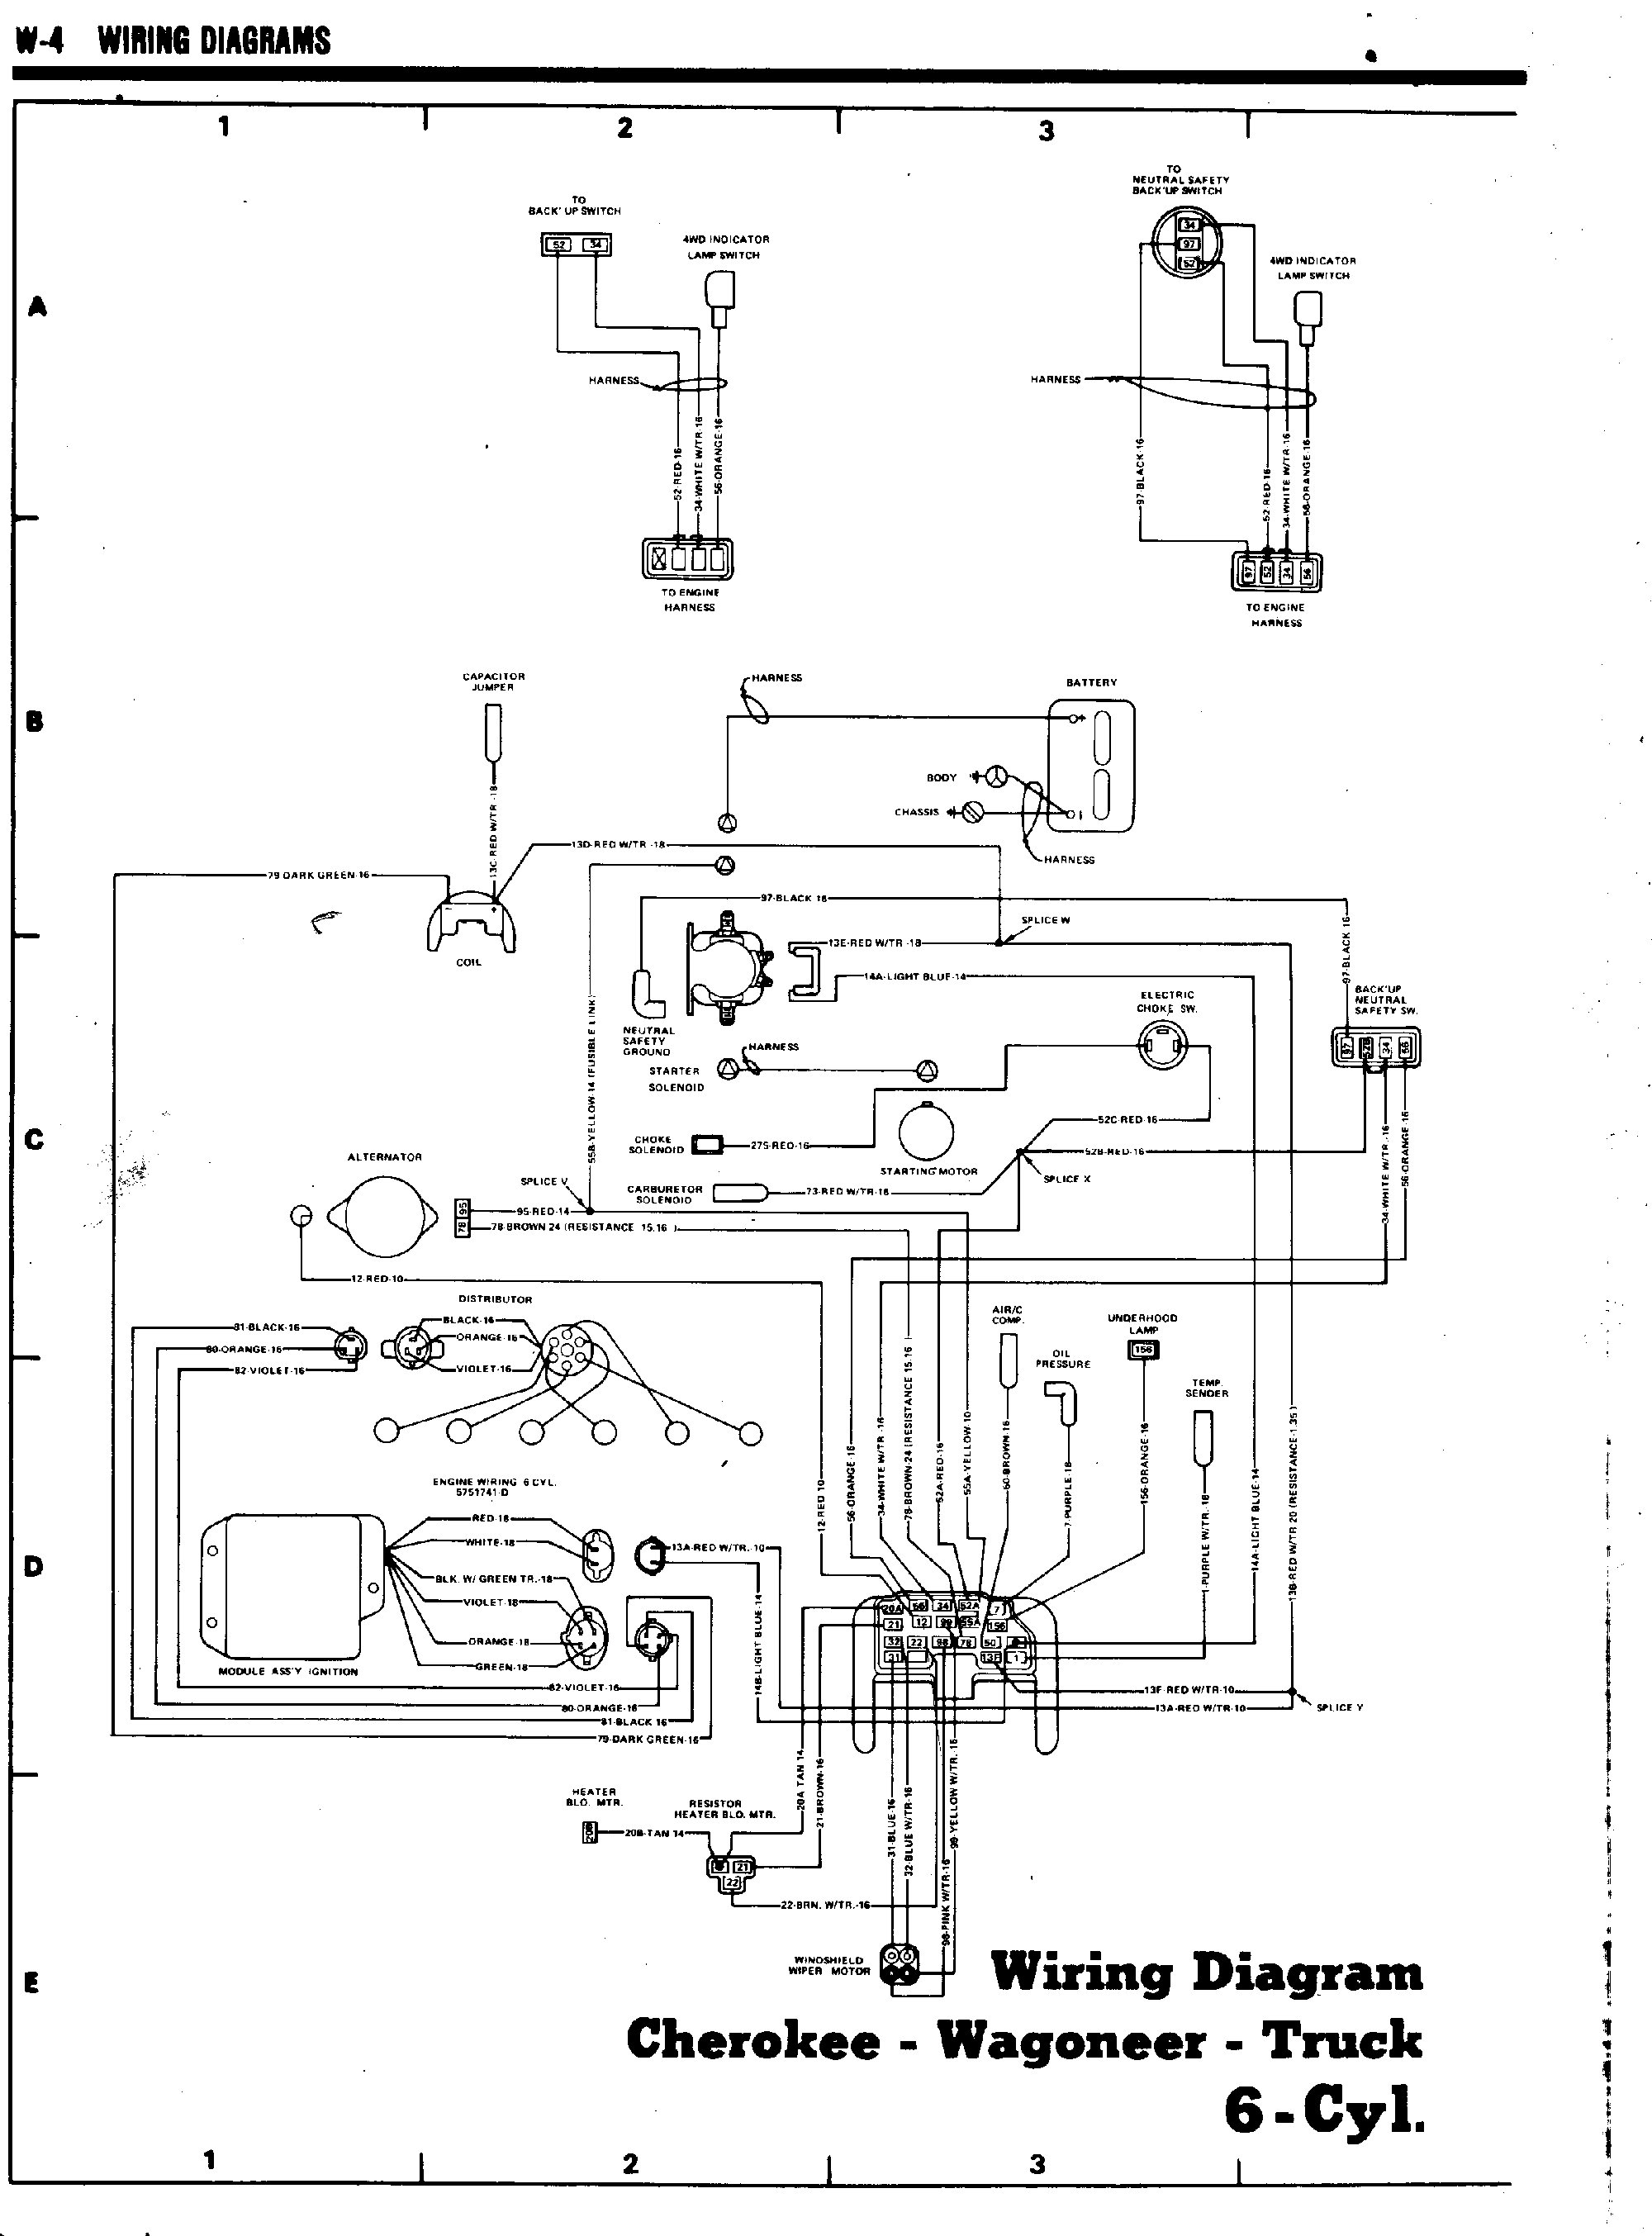 jeep j10 wiring online schematic diagram u2022 rh epicstore co Jeep Grand Cherokee Trailer Wiring Harness Jeep Door Wiring Harness